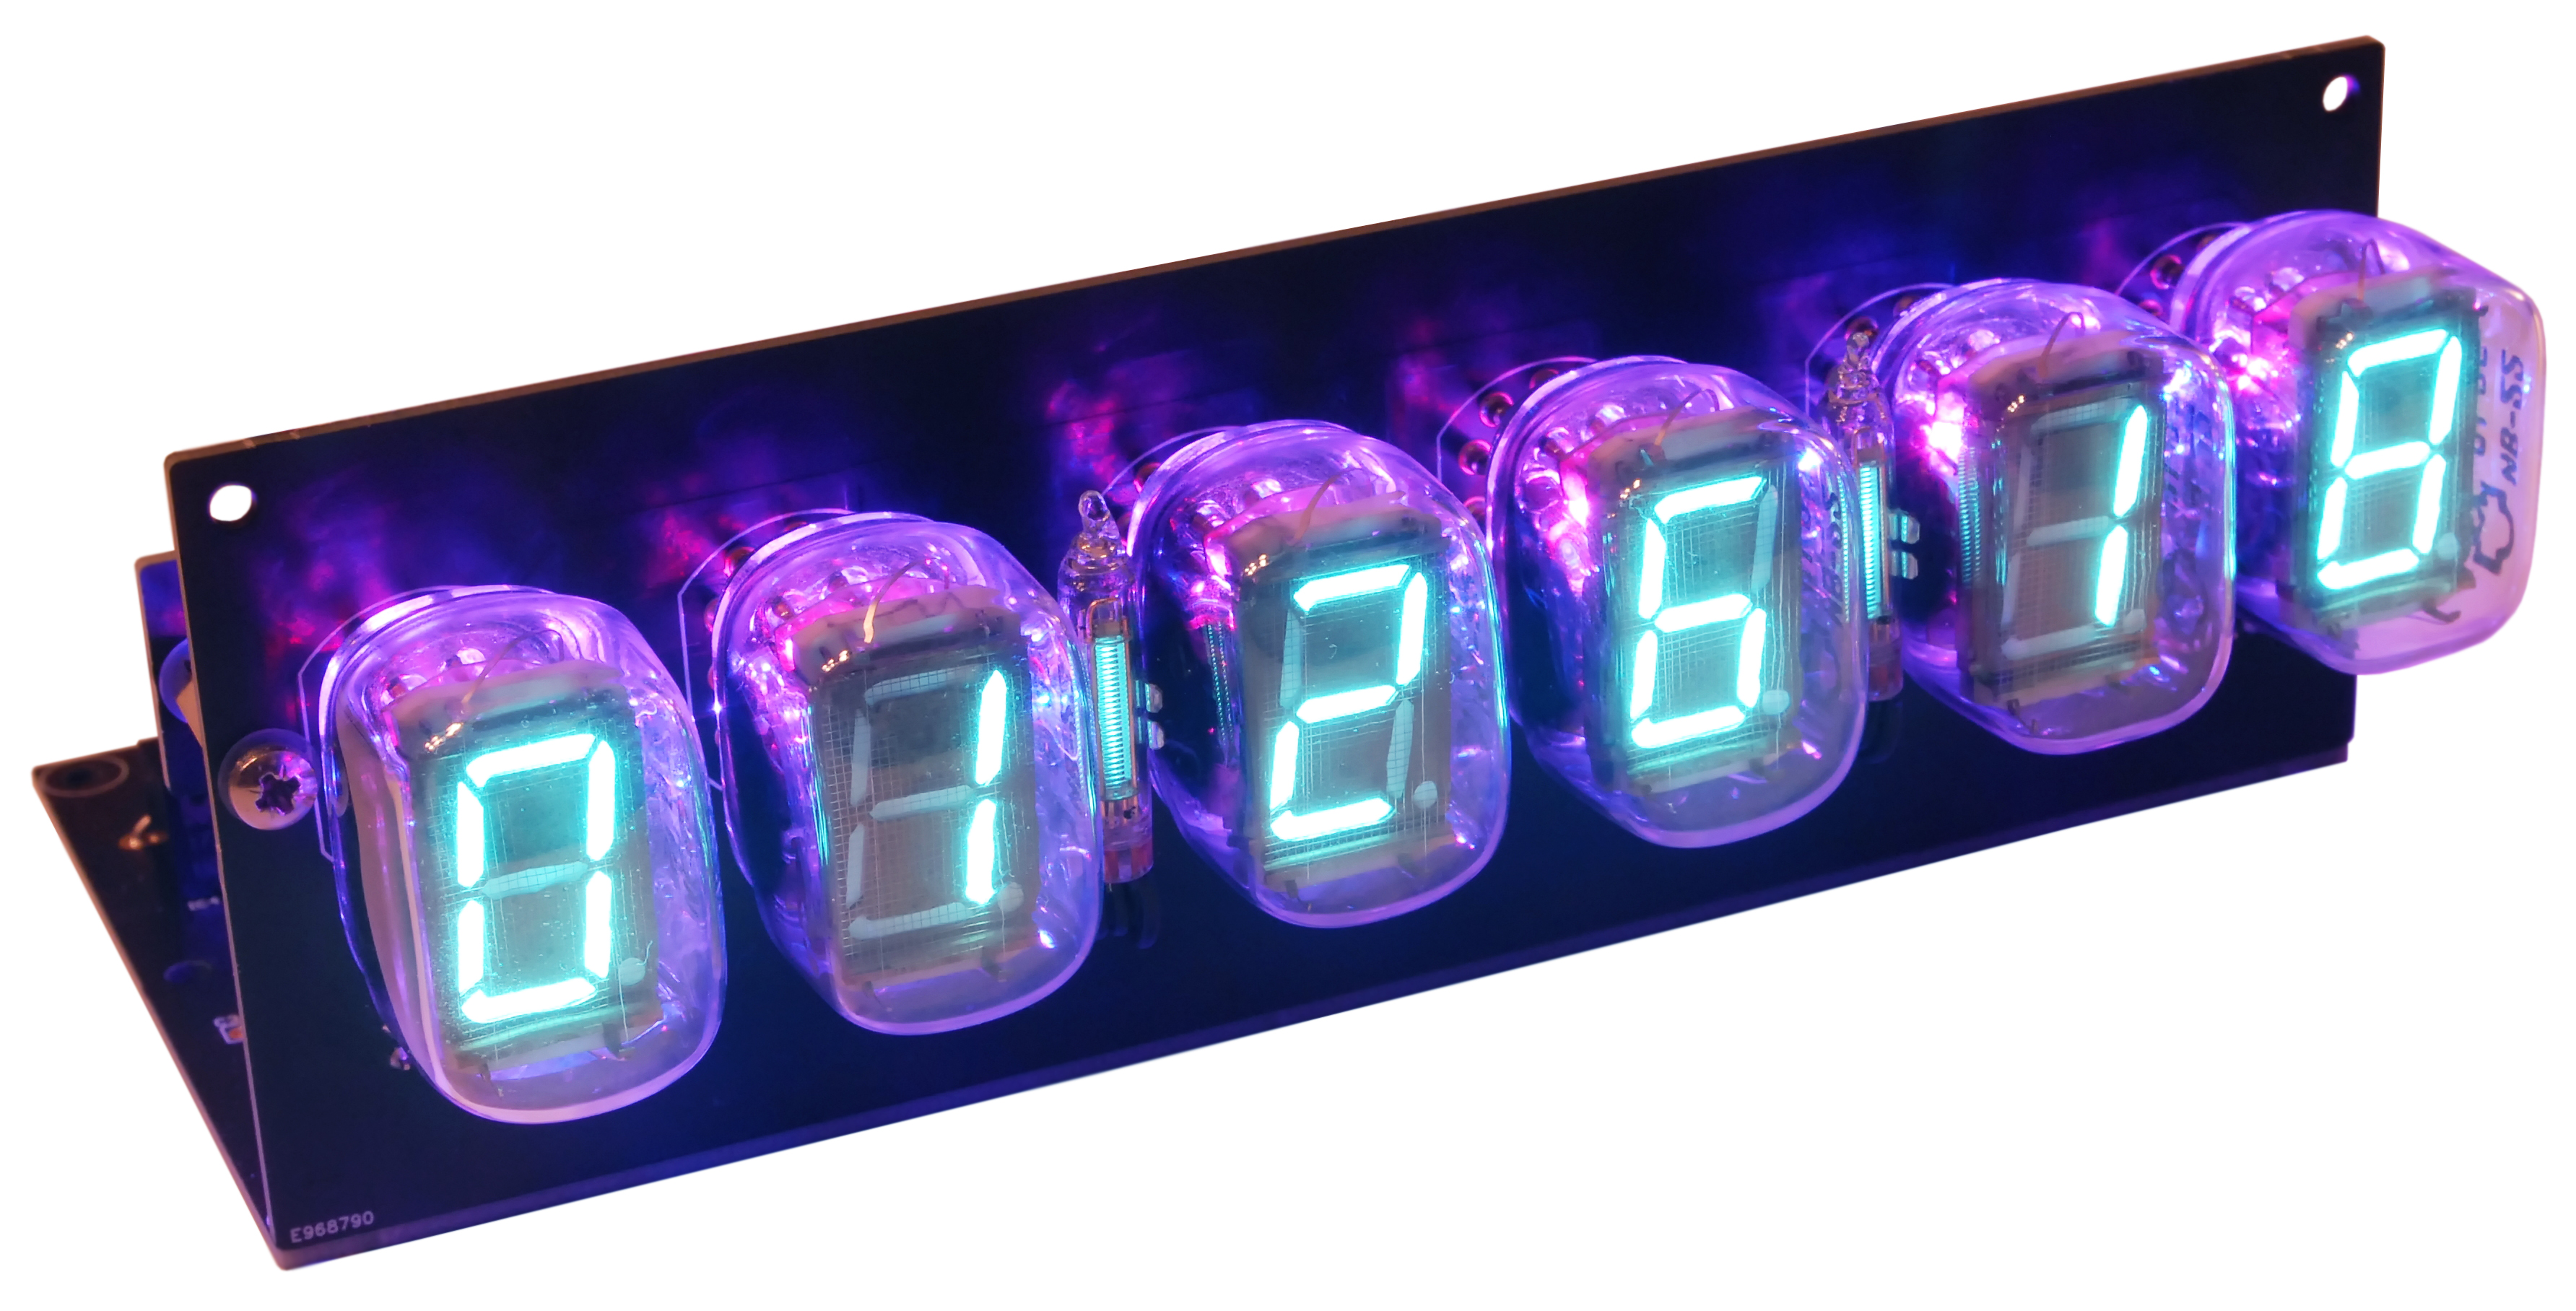 VFD-Tube Clock with ESP32 DevKit-C incl. acrylic case (170573-71)